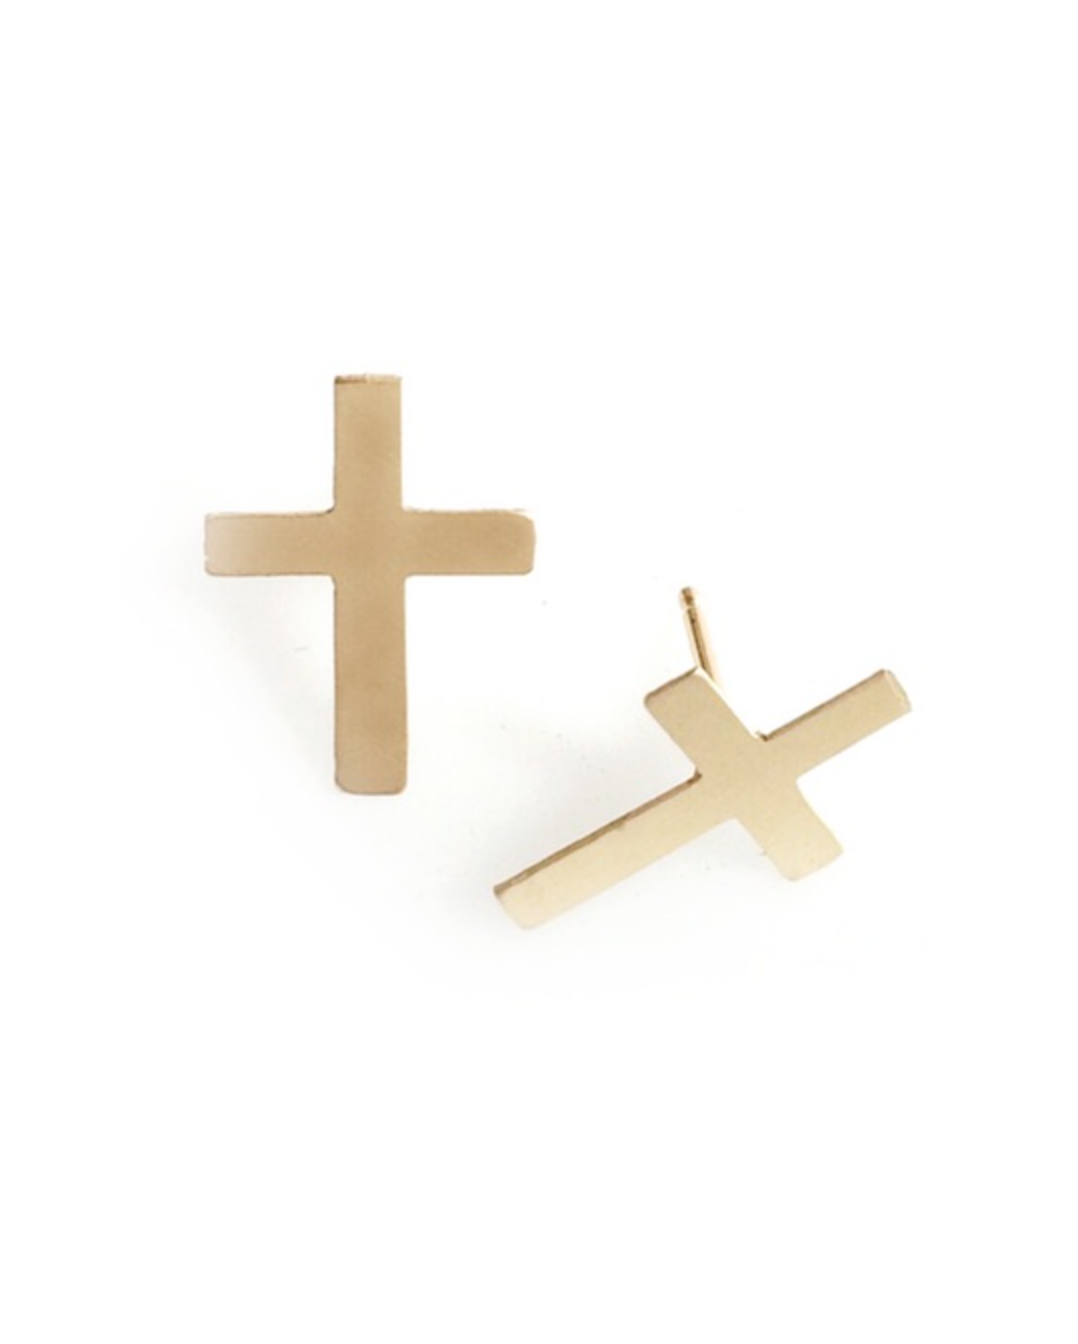 Mark and Estel X Rossmore Cross Boss Earrings in 14K Gold or Sterling